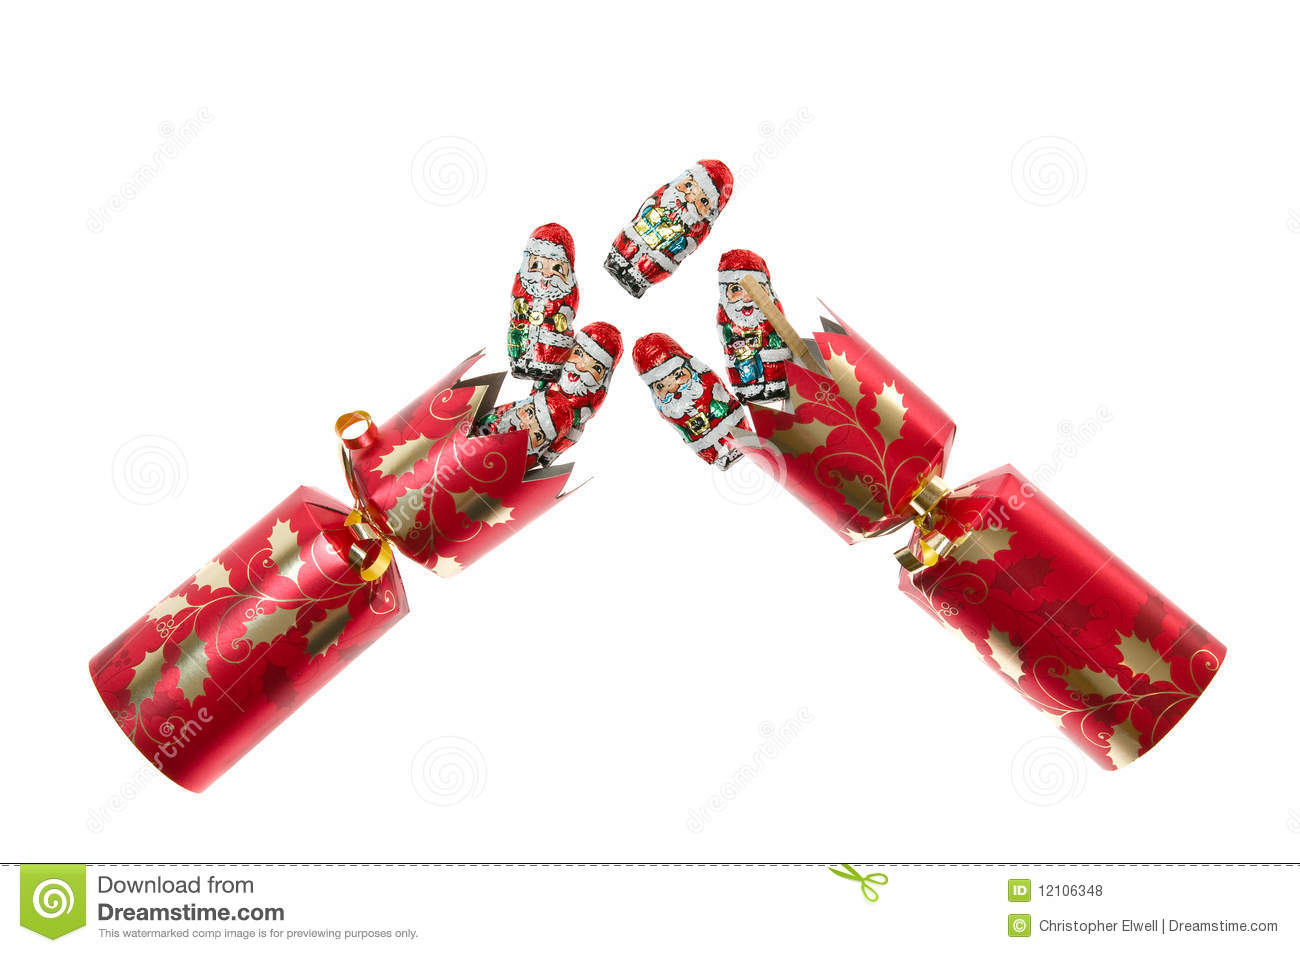 Christmas cracker pulled apart with foil covered chocolate Santas ...